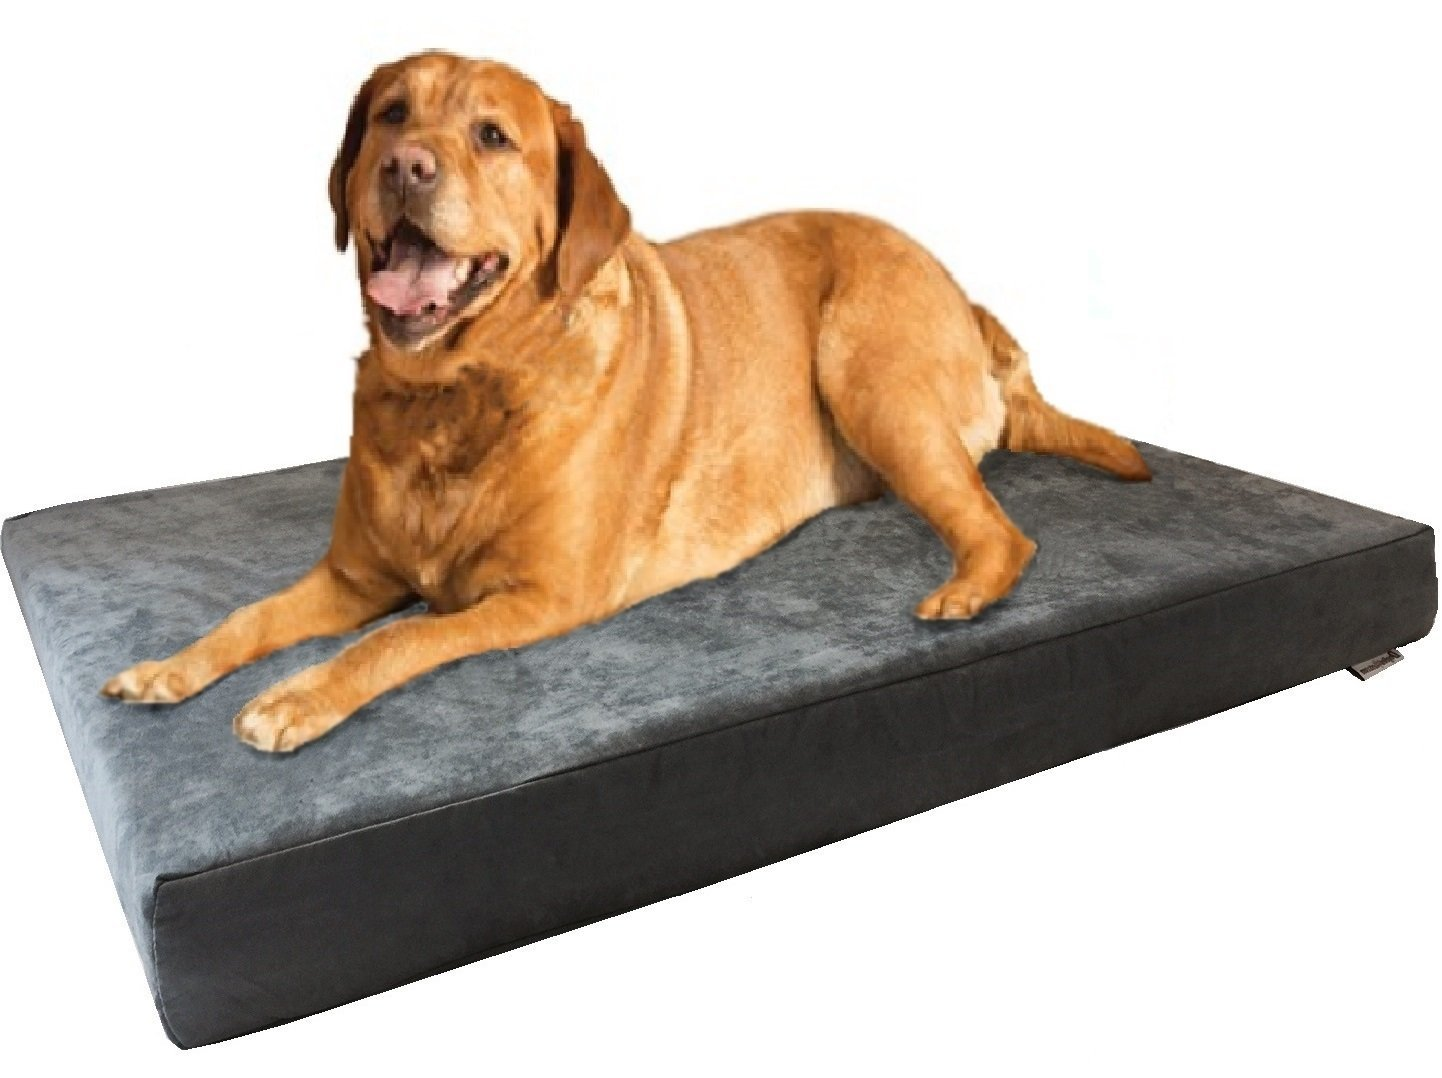 Dogbed4less Heavy Duty Orthopedic Memory Foam Pet Bed with Waterproof Internal Case 2 Washable Microsuede External Cover for Large Dog